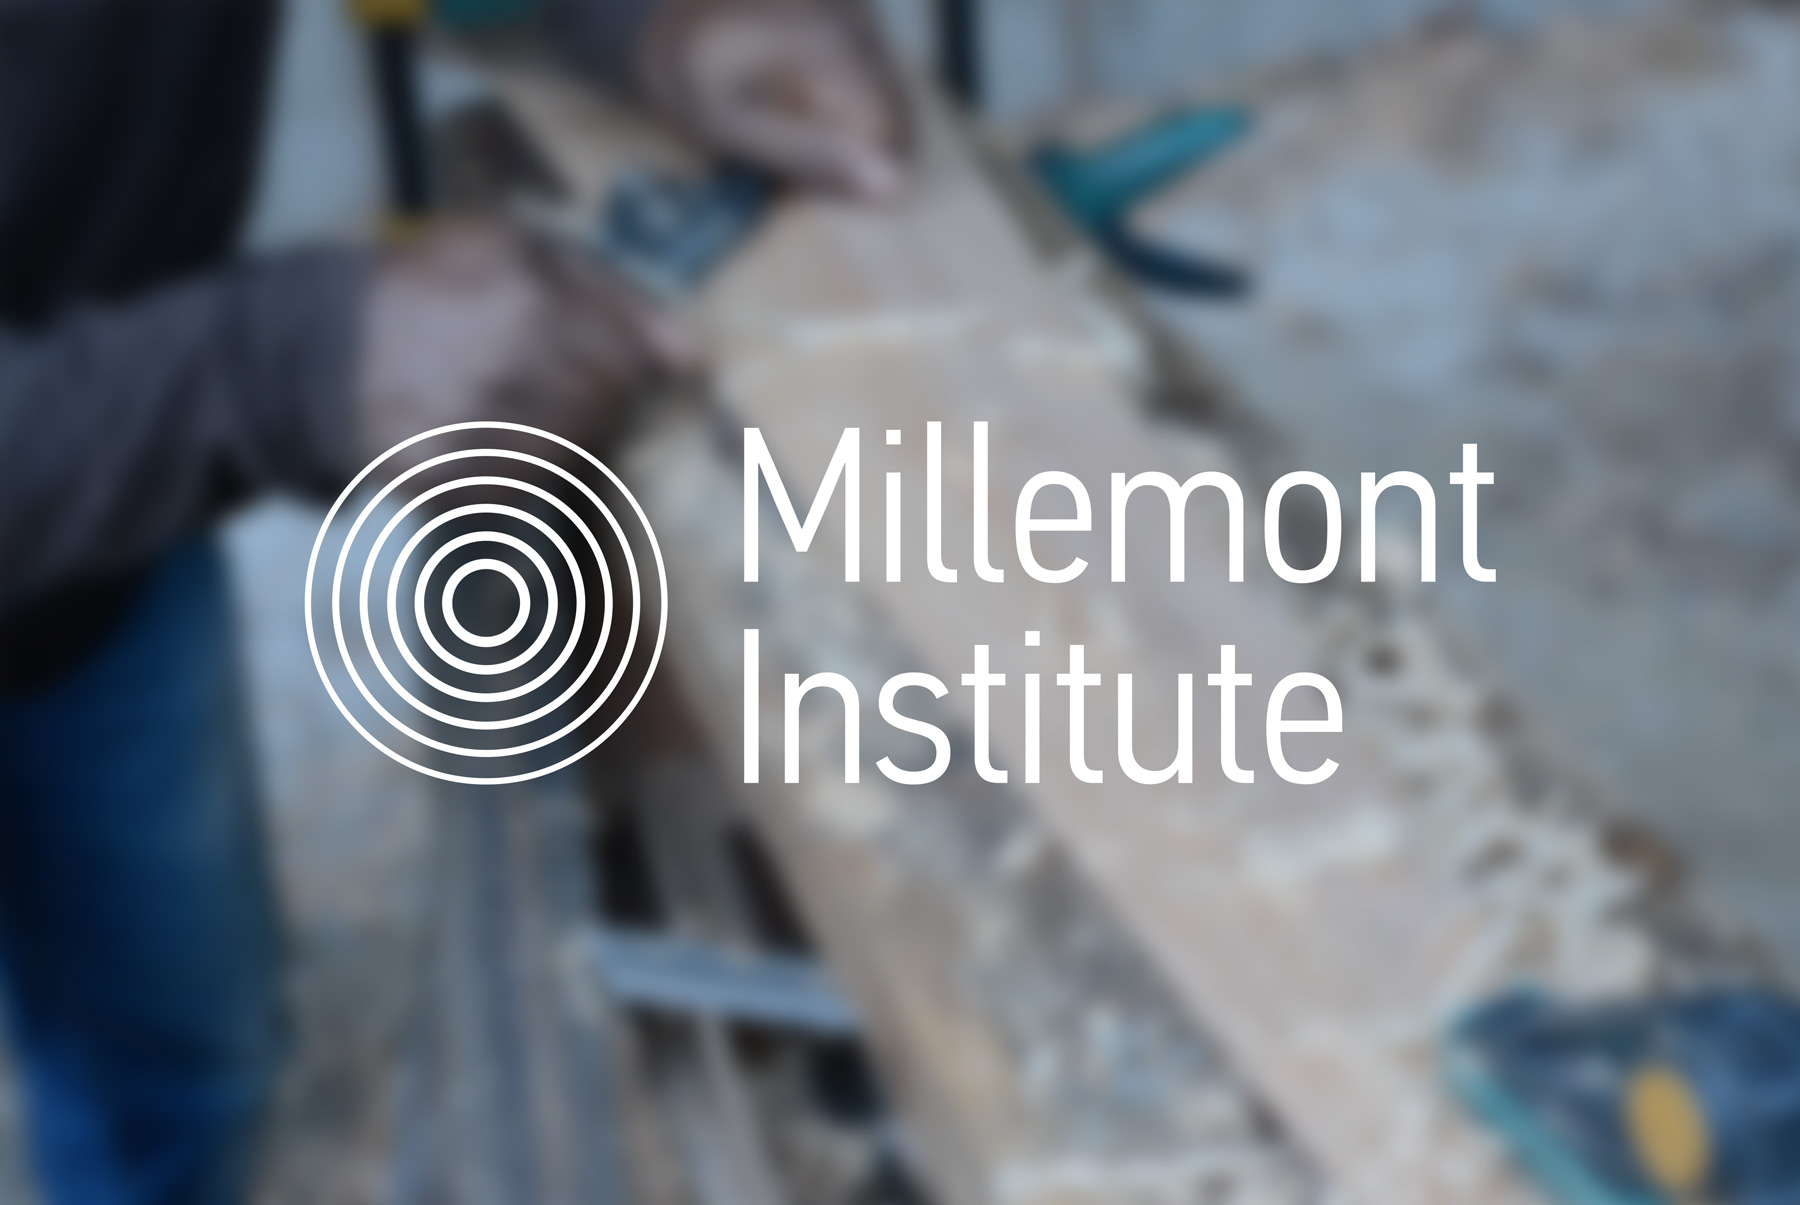 millemont-logo-on-shavinghands-blur